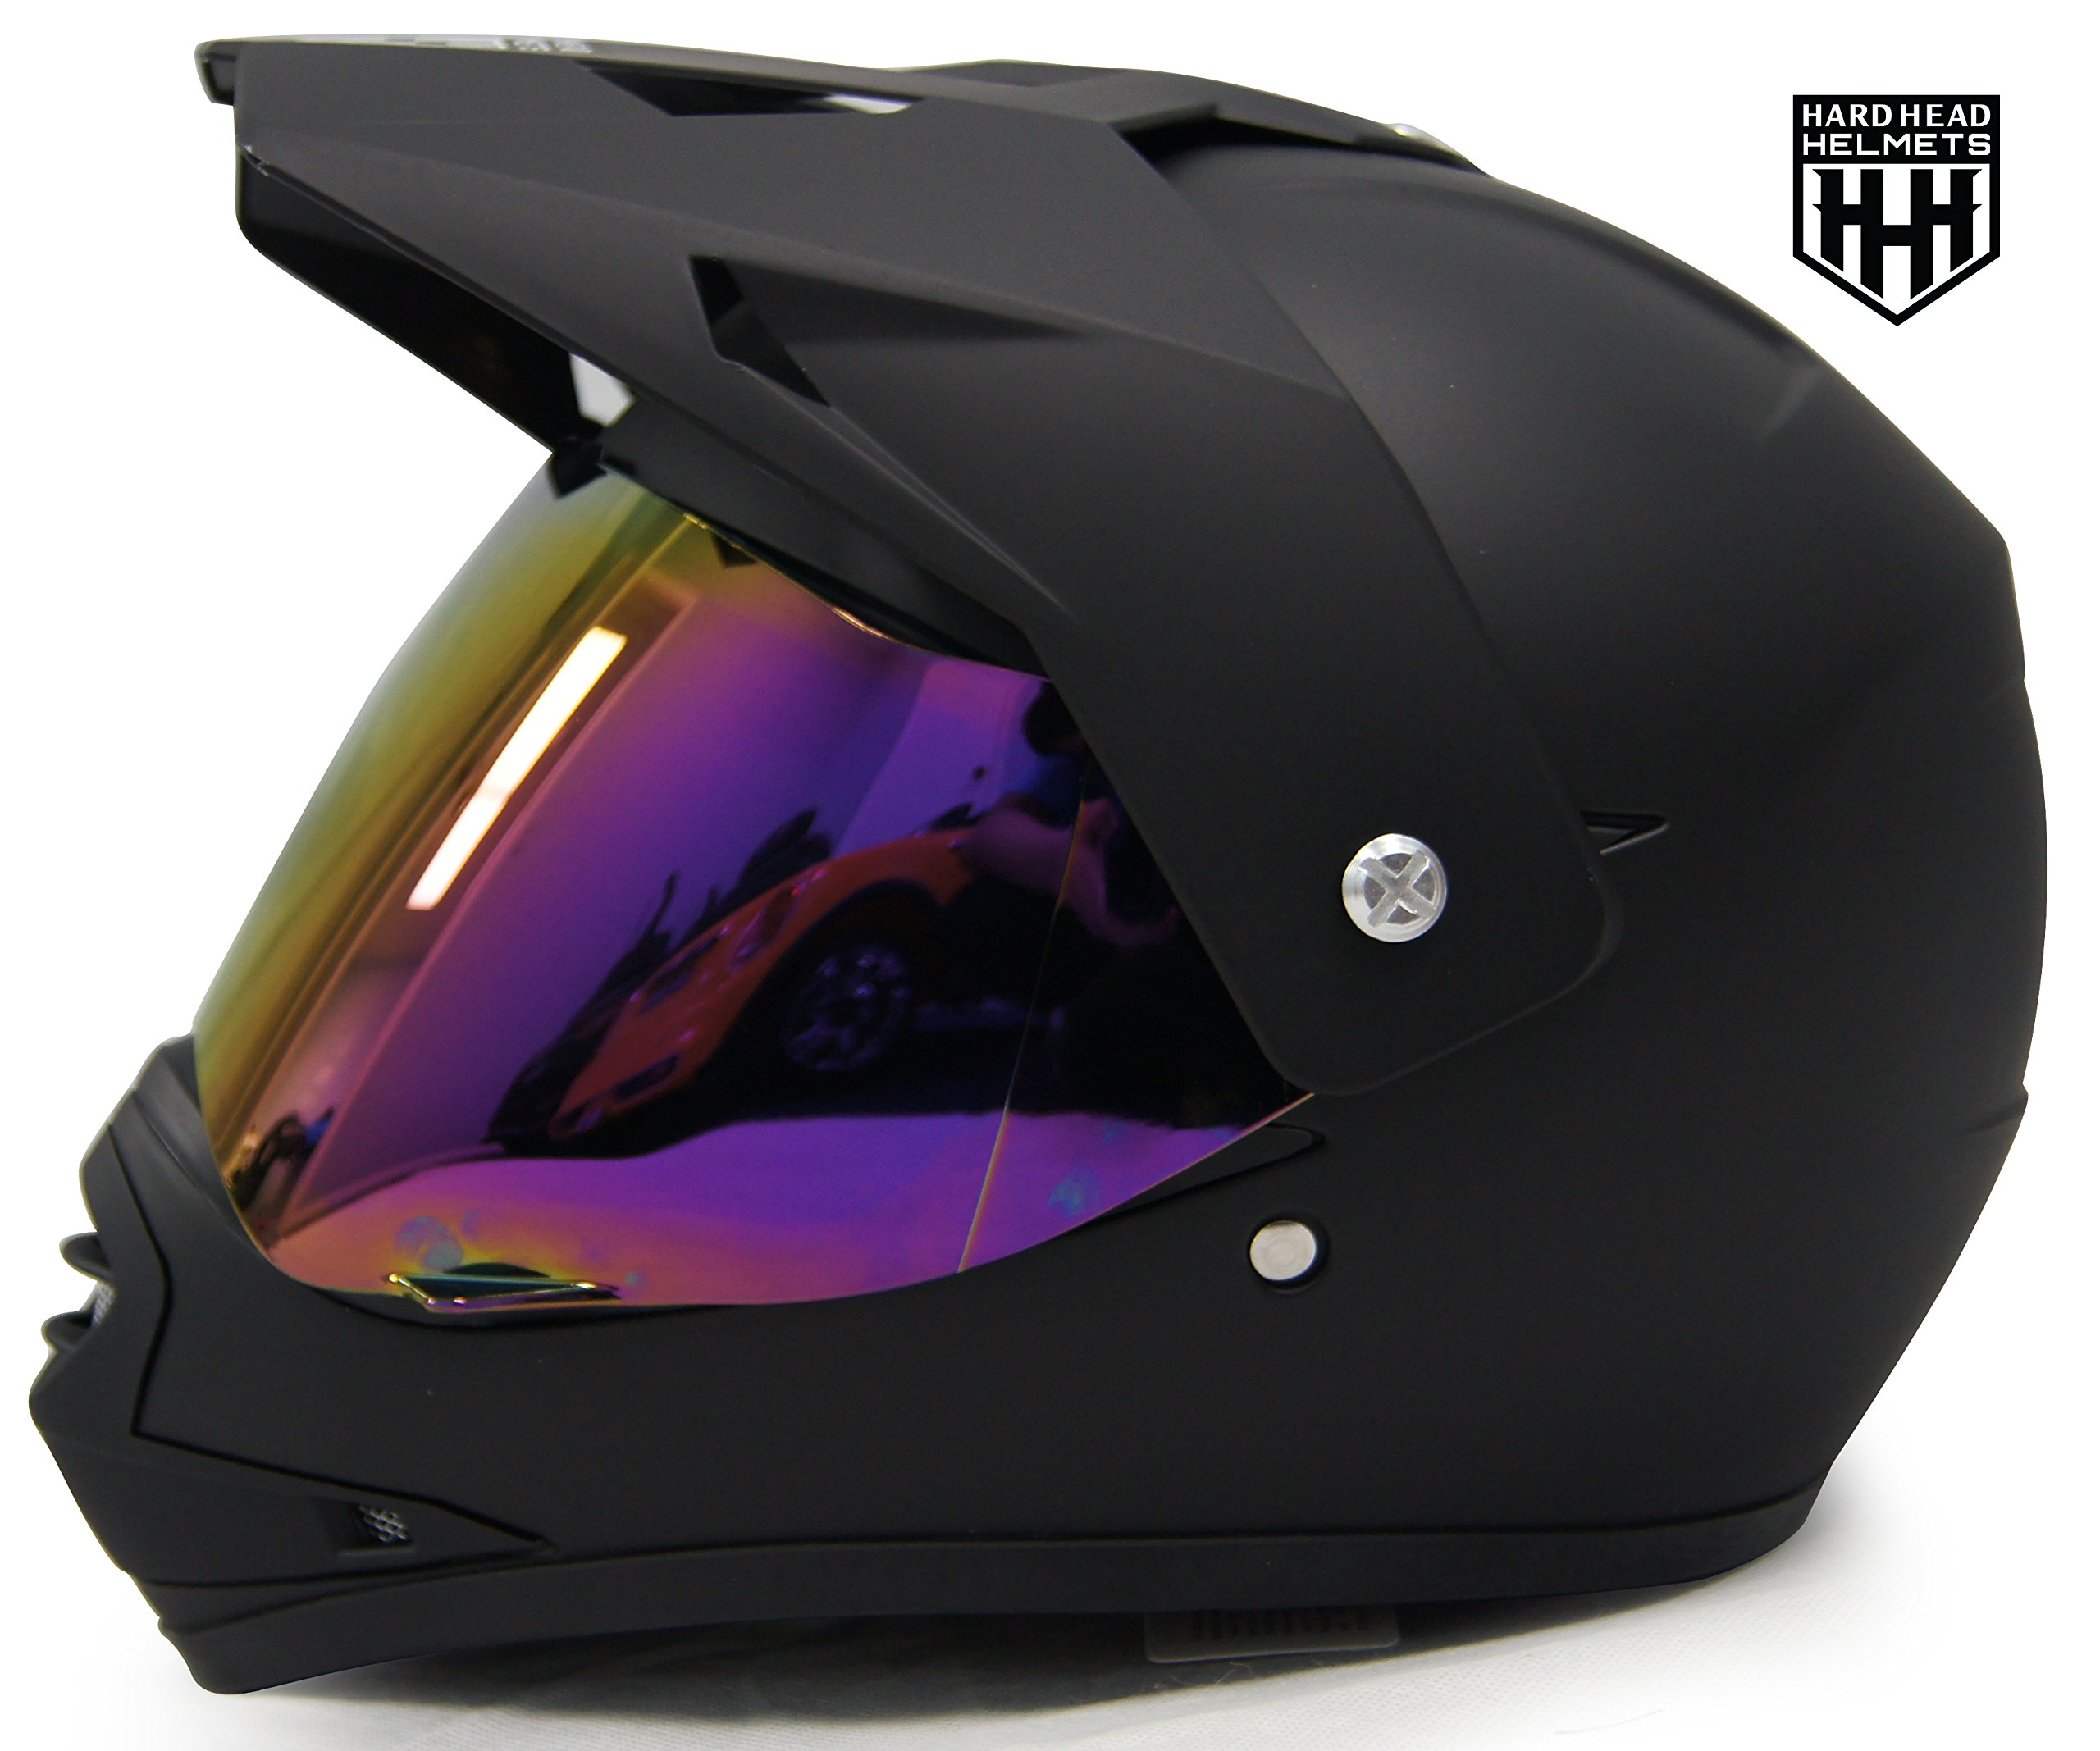 SmartDealsNow - HHH DOT Youth & Kids Helmet for Dirtbike ATV Motocross MX Offroad Motorcyle Street bike Snowmobile Helmet with VISOR (Medium, Matte Black) by HARD HEAD HELMET